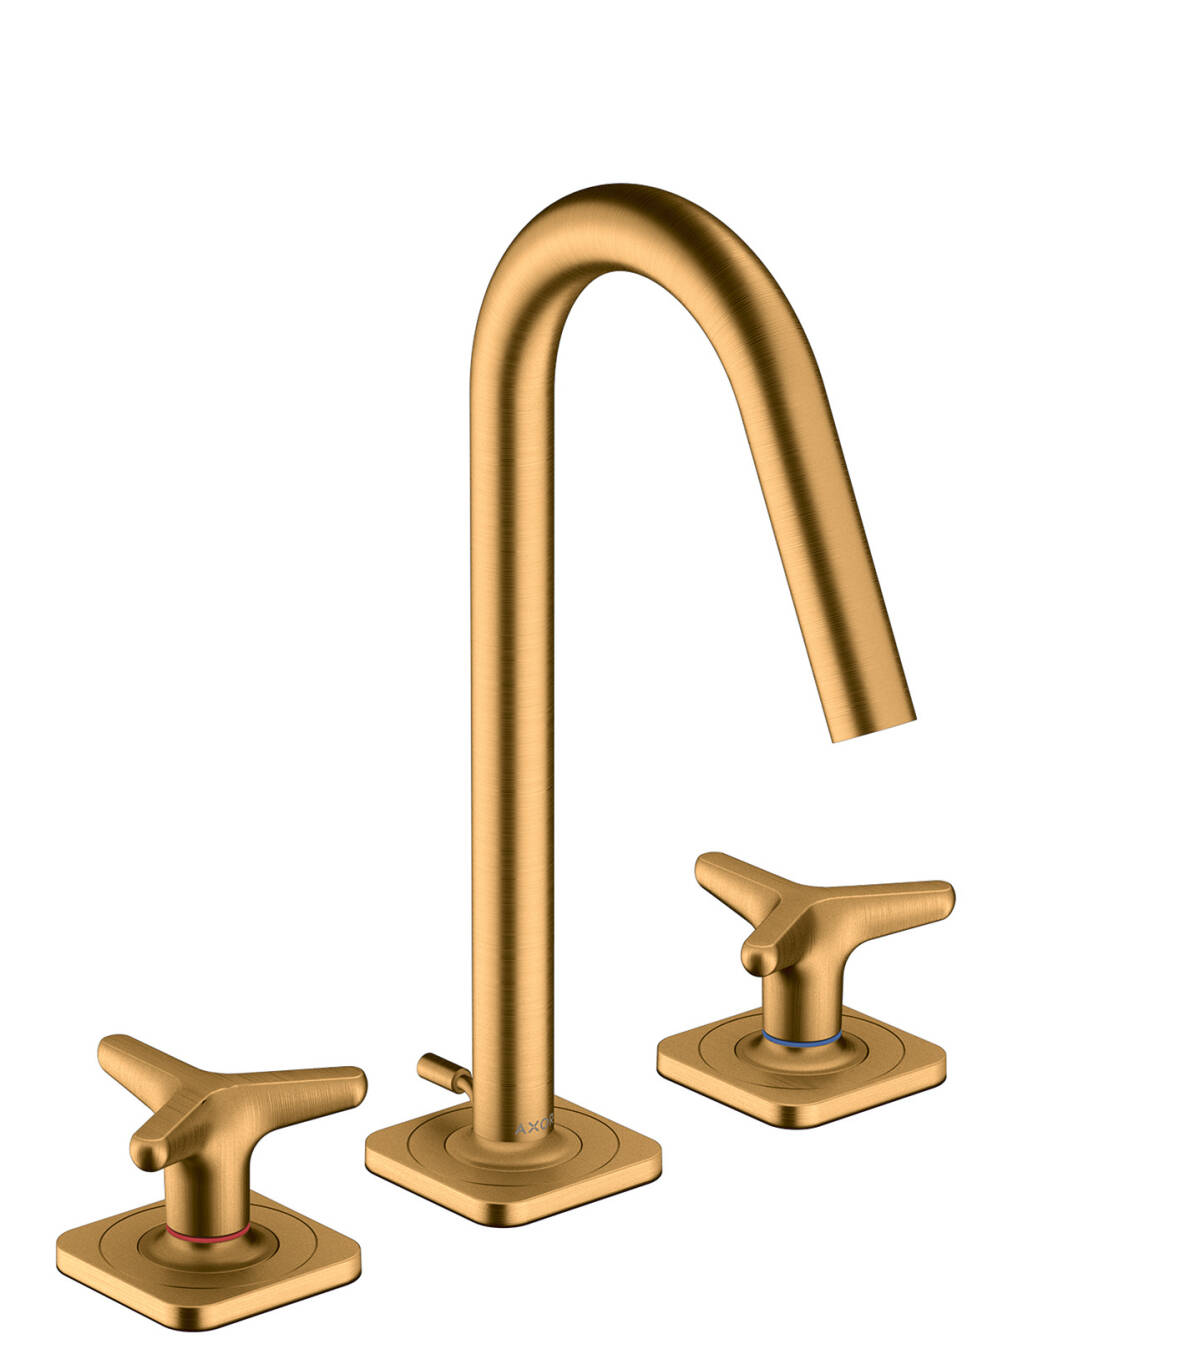 3-hole basin mixer 160 with star handles, escutcheons and pop-up waste set, Brushed Gold Optic, 34135250